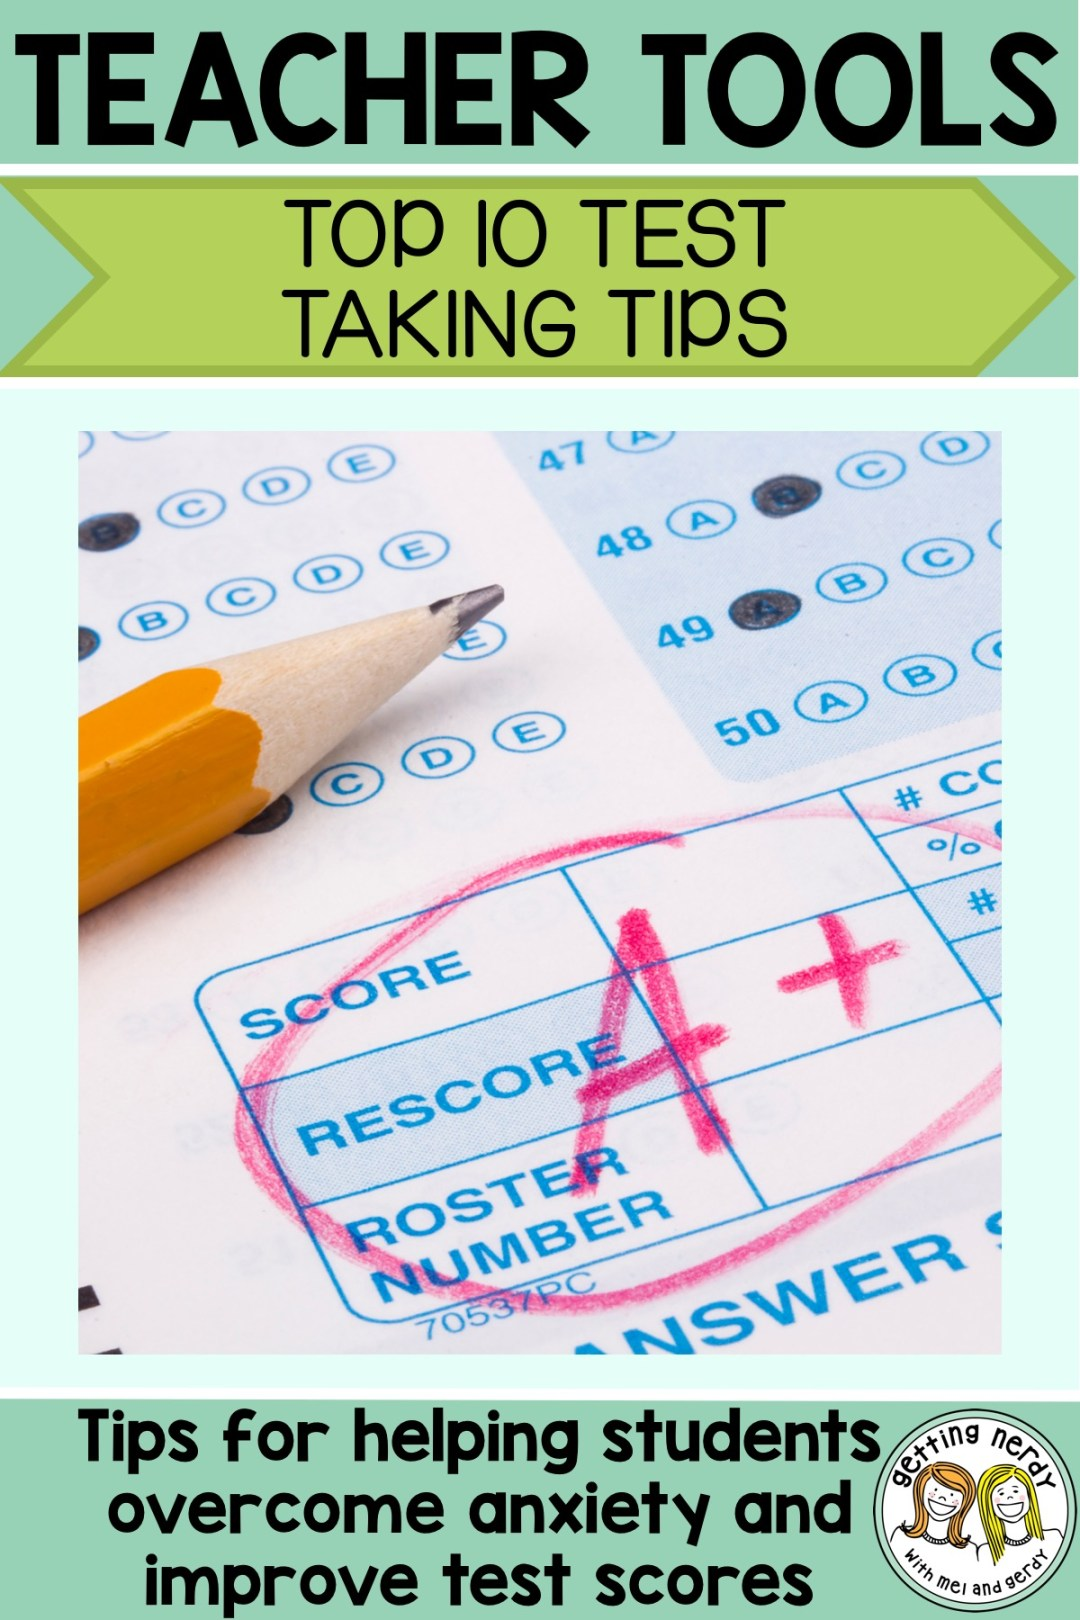 Help your students by sharing these top ten test taking strategies that are sure to increase scores and decrease anxiety #gettingnerdyscience #testtakingtips #testanxiety